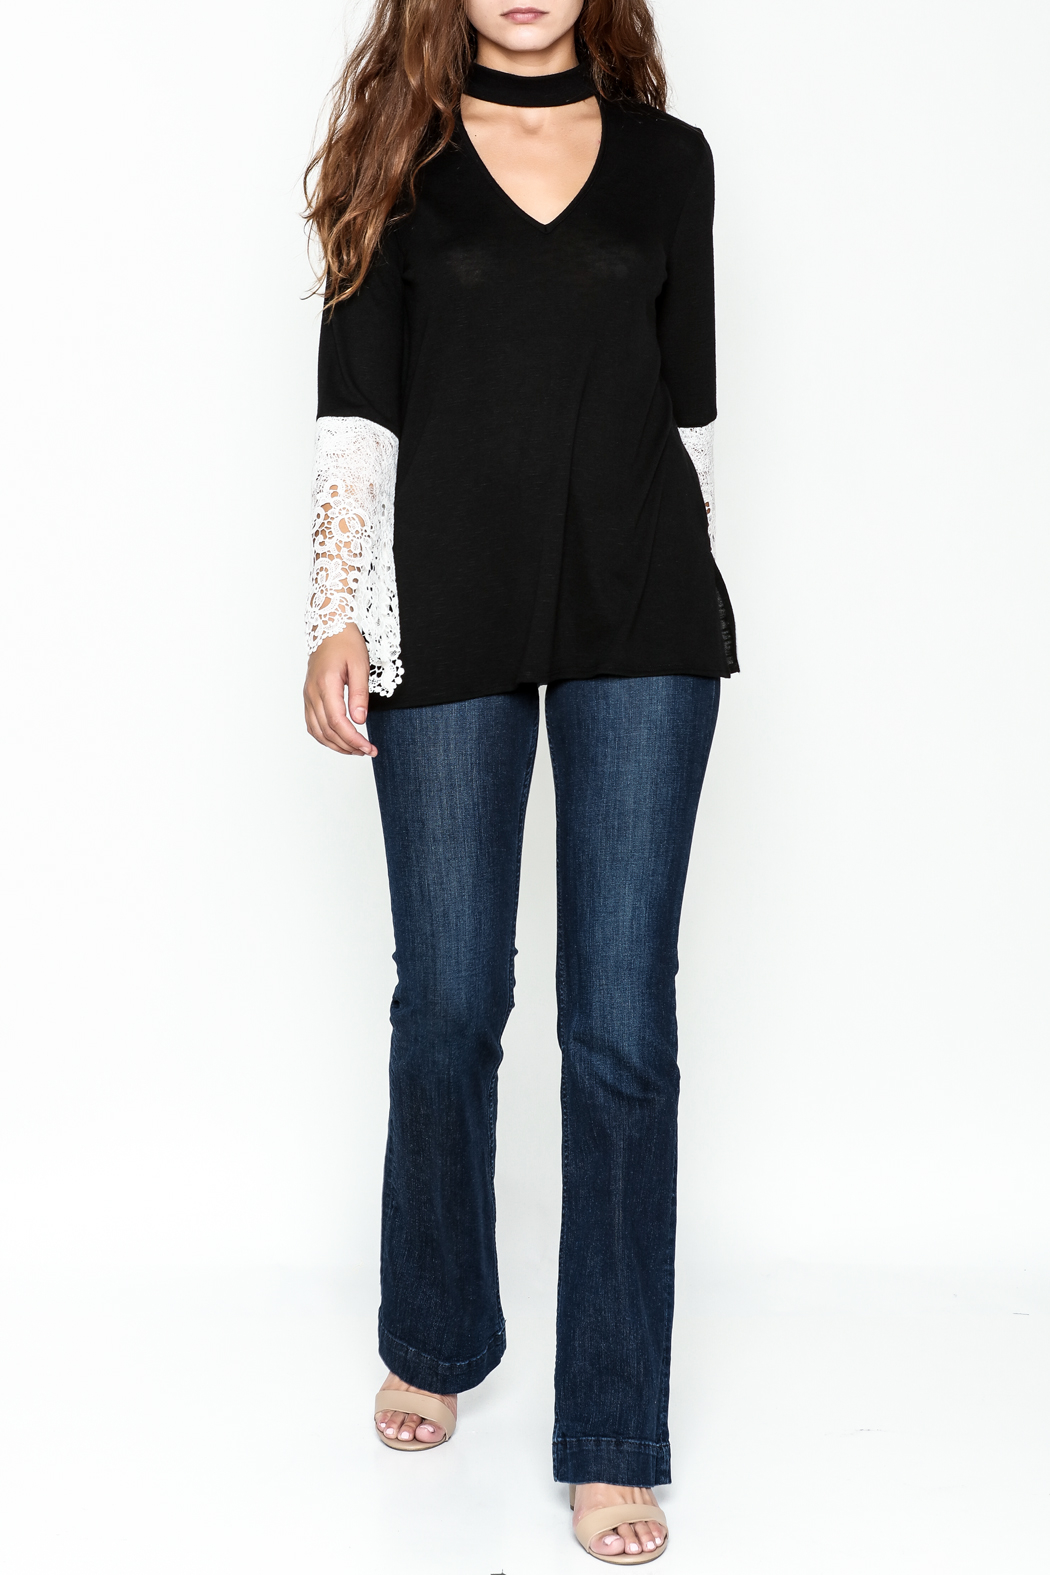 Kay Celine Danielle Cut Out Top - Side Cropped Image